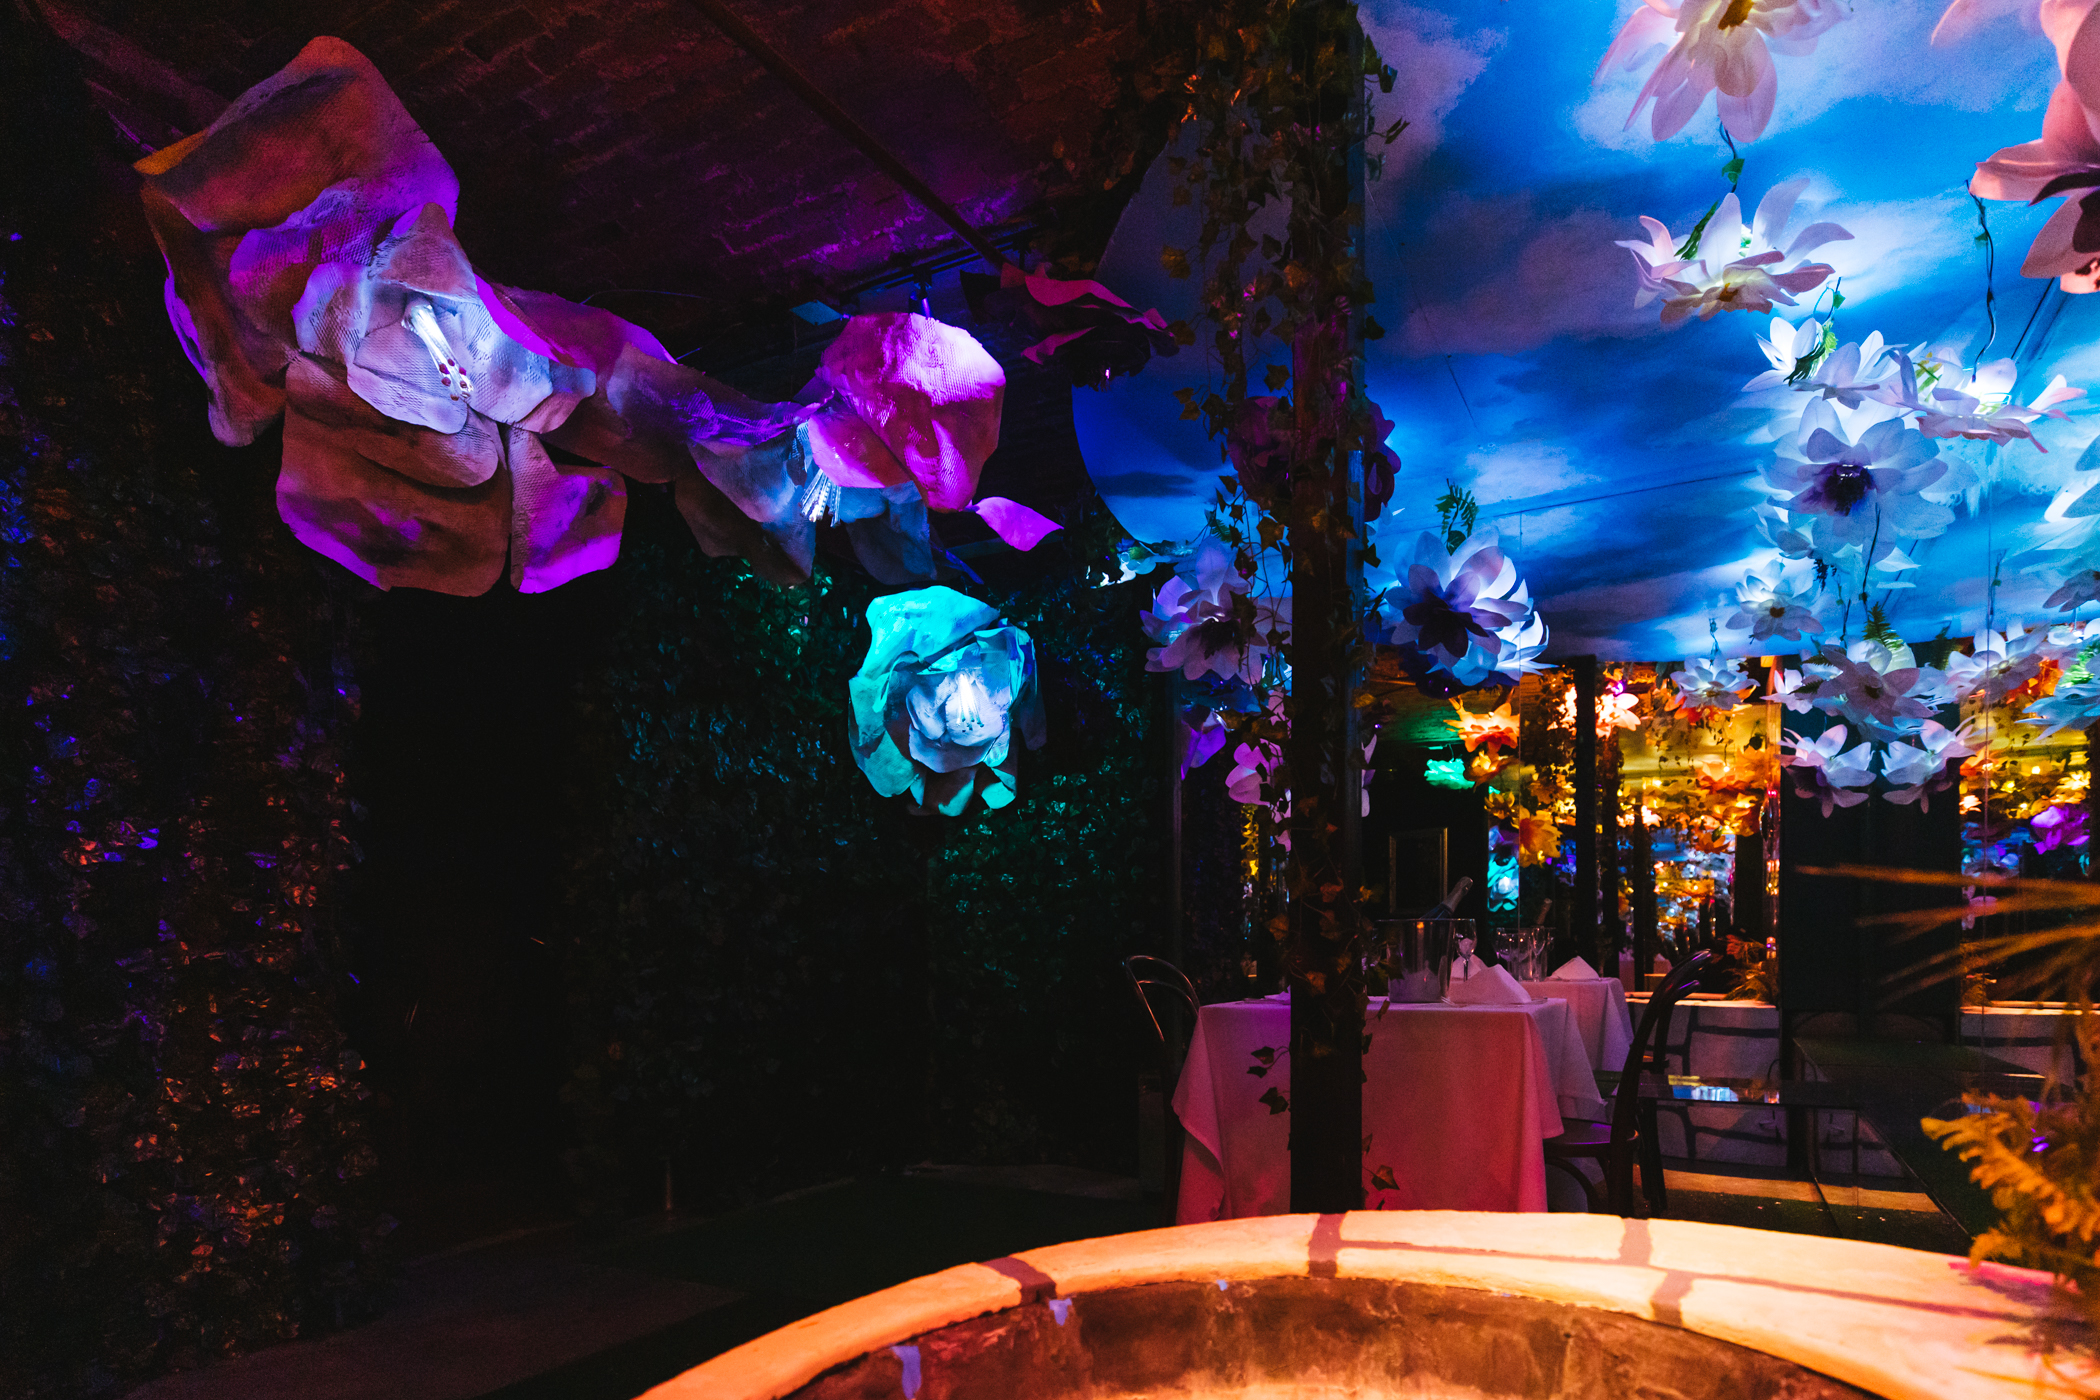 "Valentine's Day is right around the corner, and nothing screams ""love"" more than a romantic dinner for two in{&nbsp;}<a  href=""https://www.cafenordo.com/"" target=""_blank"" title=""https://www.cafenordo.com/"">Cafe Nordo's</a>{&nbsp;}stunning Infinity Garden room - and you actually could spend V-Day doing just that!{&nbsp;}Cafe Nordo is auctioning off this dinner-for-two package through their virtual annual fundraiser,{&nbsp;}<a  href=""https://secure.qgiv.com/event/kiss21/"" target=""_blank"" title=""https://secure.qgiv.com/event/kiss21/"">KISS: Live from our Pillow Fort</a>, being held Saturday, Jan. 30. Interested parties can register through{&nbsp;}the Givi app and place a bid. (Image: Sunita Martini / Seattle Refined)"